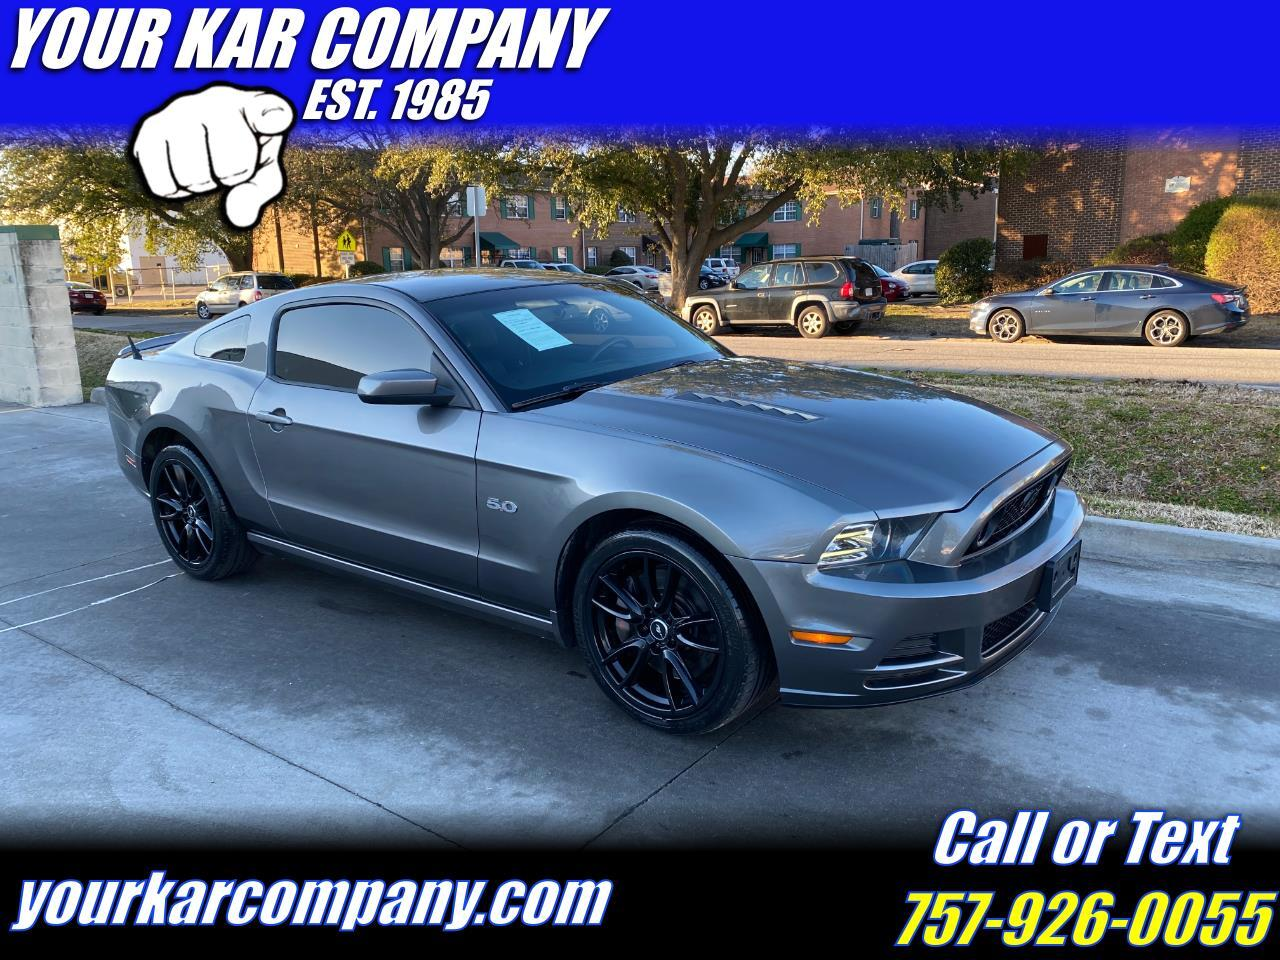 Ford Mustang 2dr Cpe GT Premium 2013